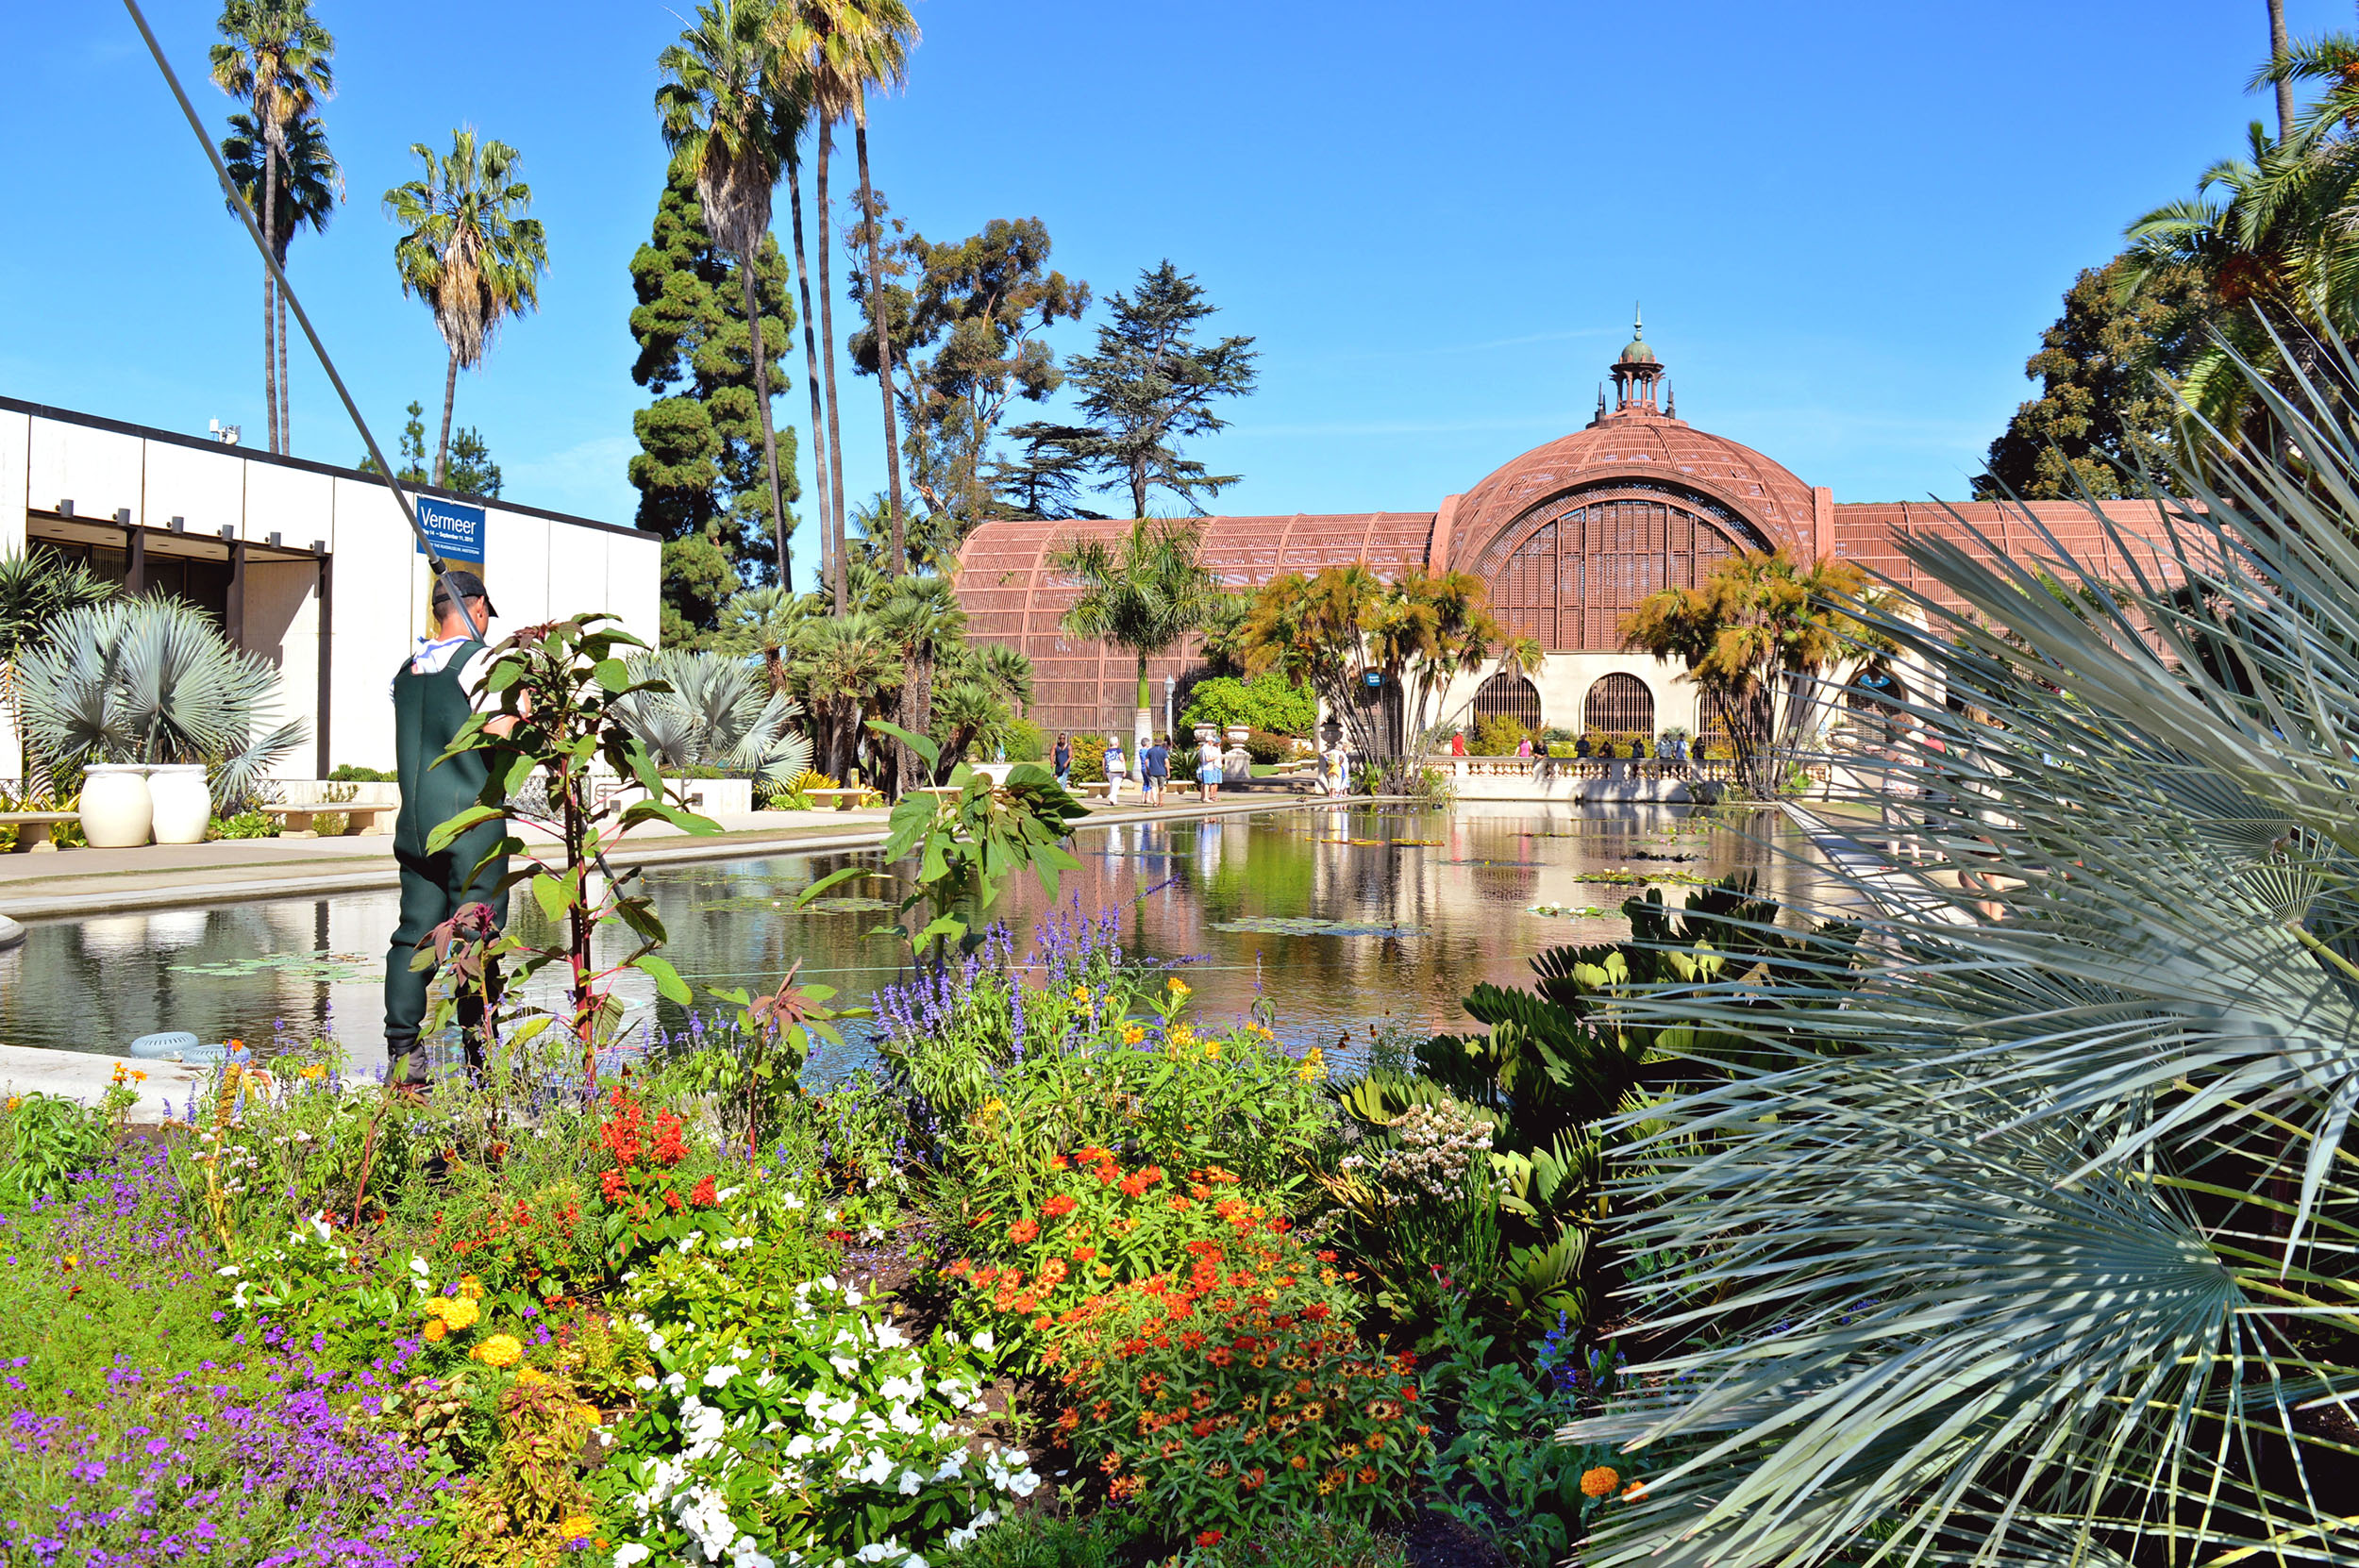 The botanical garden in Balboa Park, San Diego.